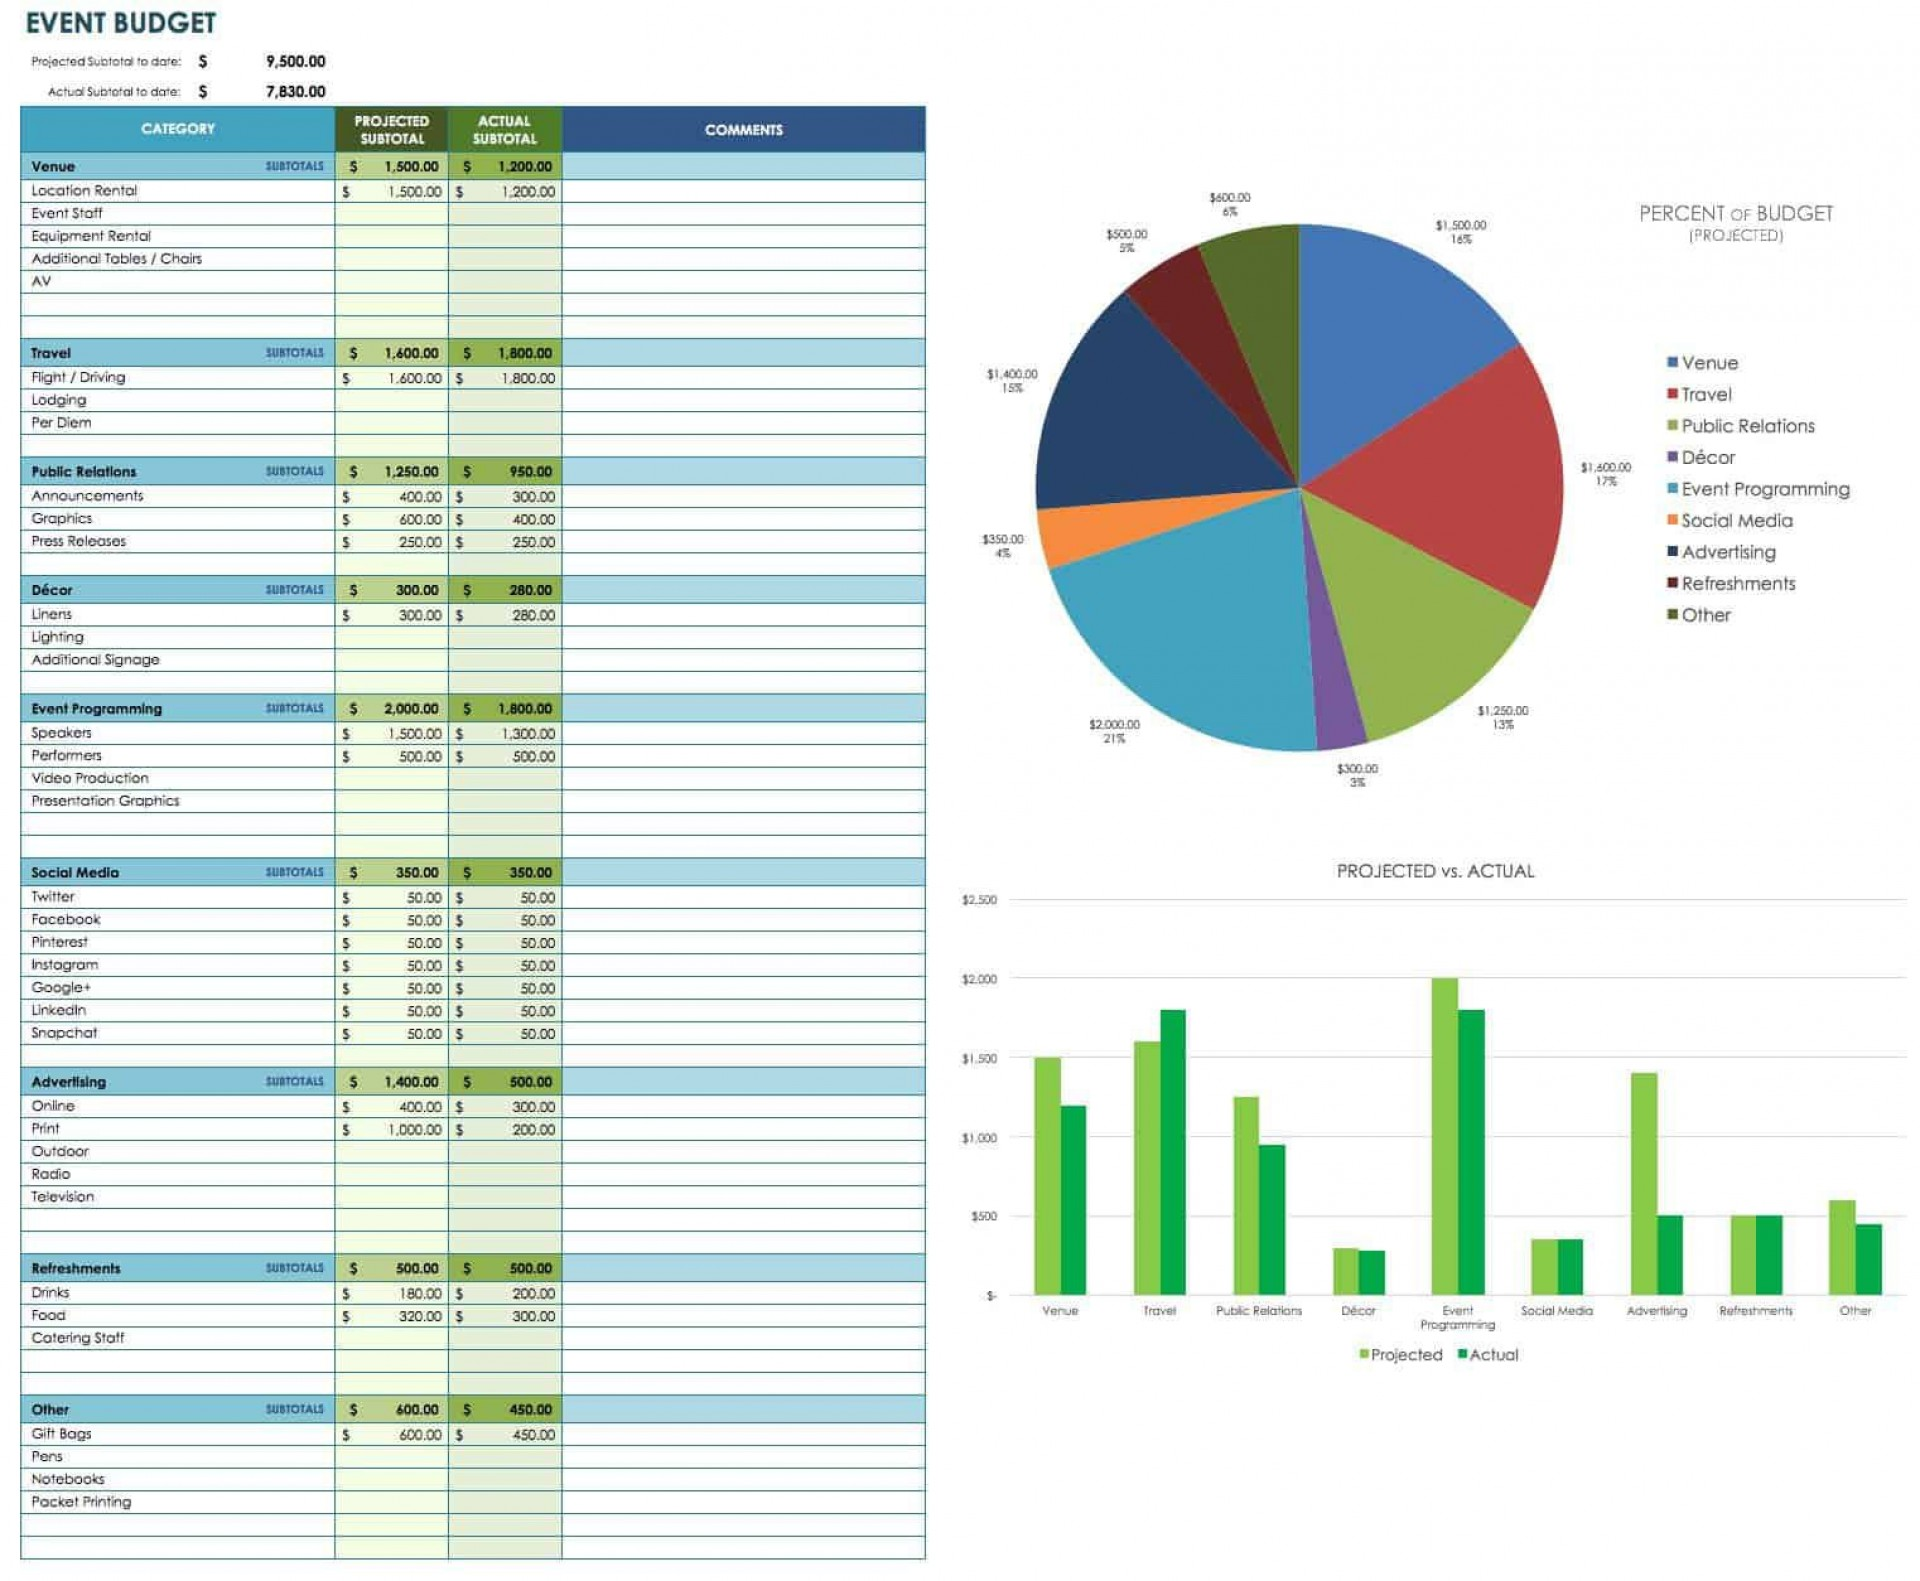 006 Wondrou Event Planner Budget Template Excel Concept  Party Planning Spreadsheet1920